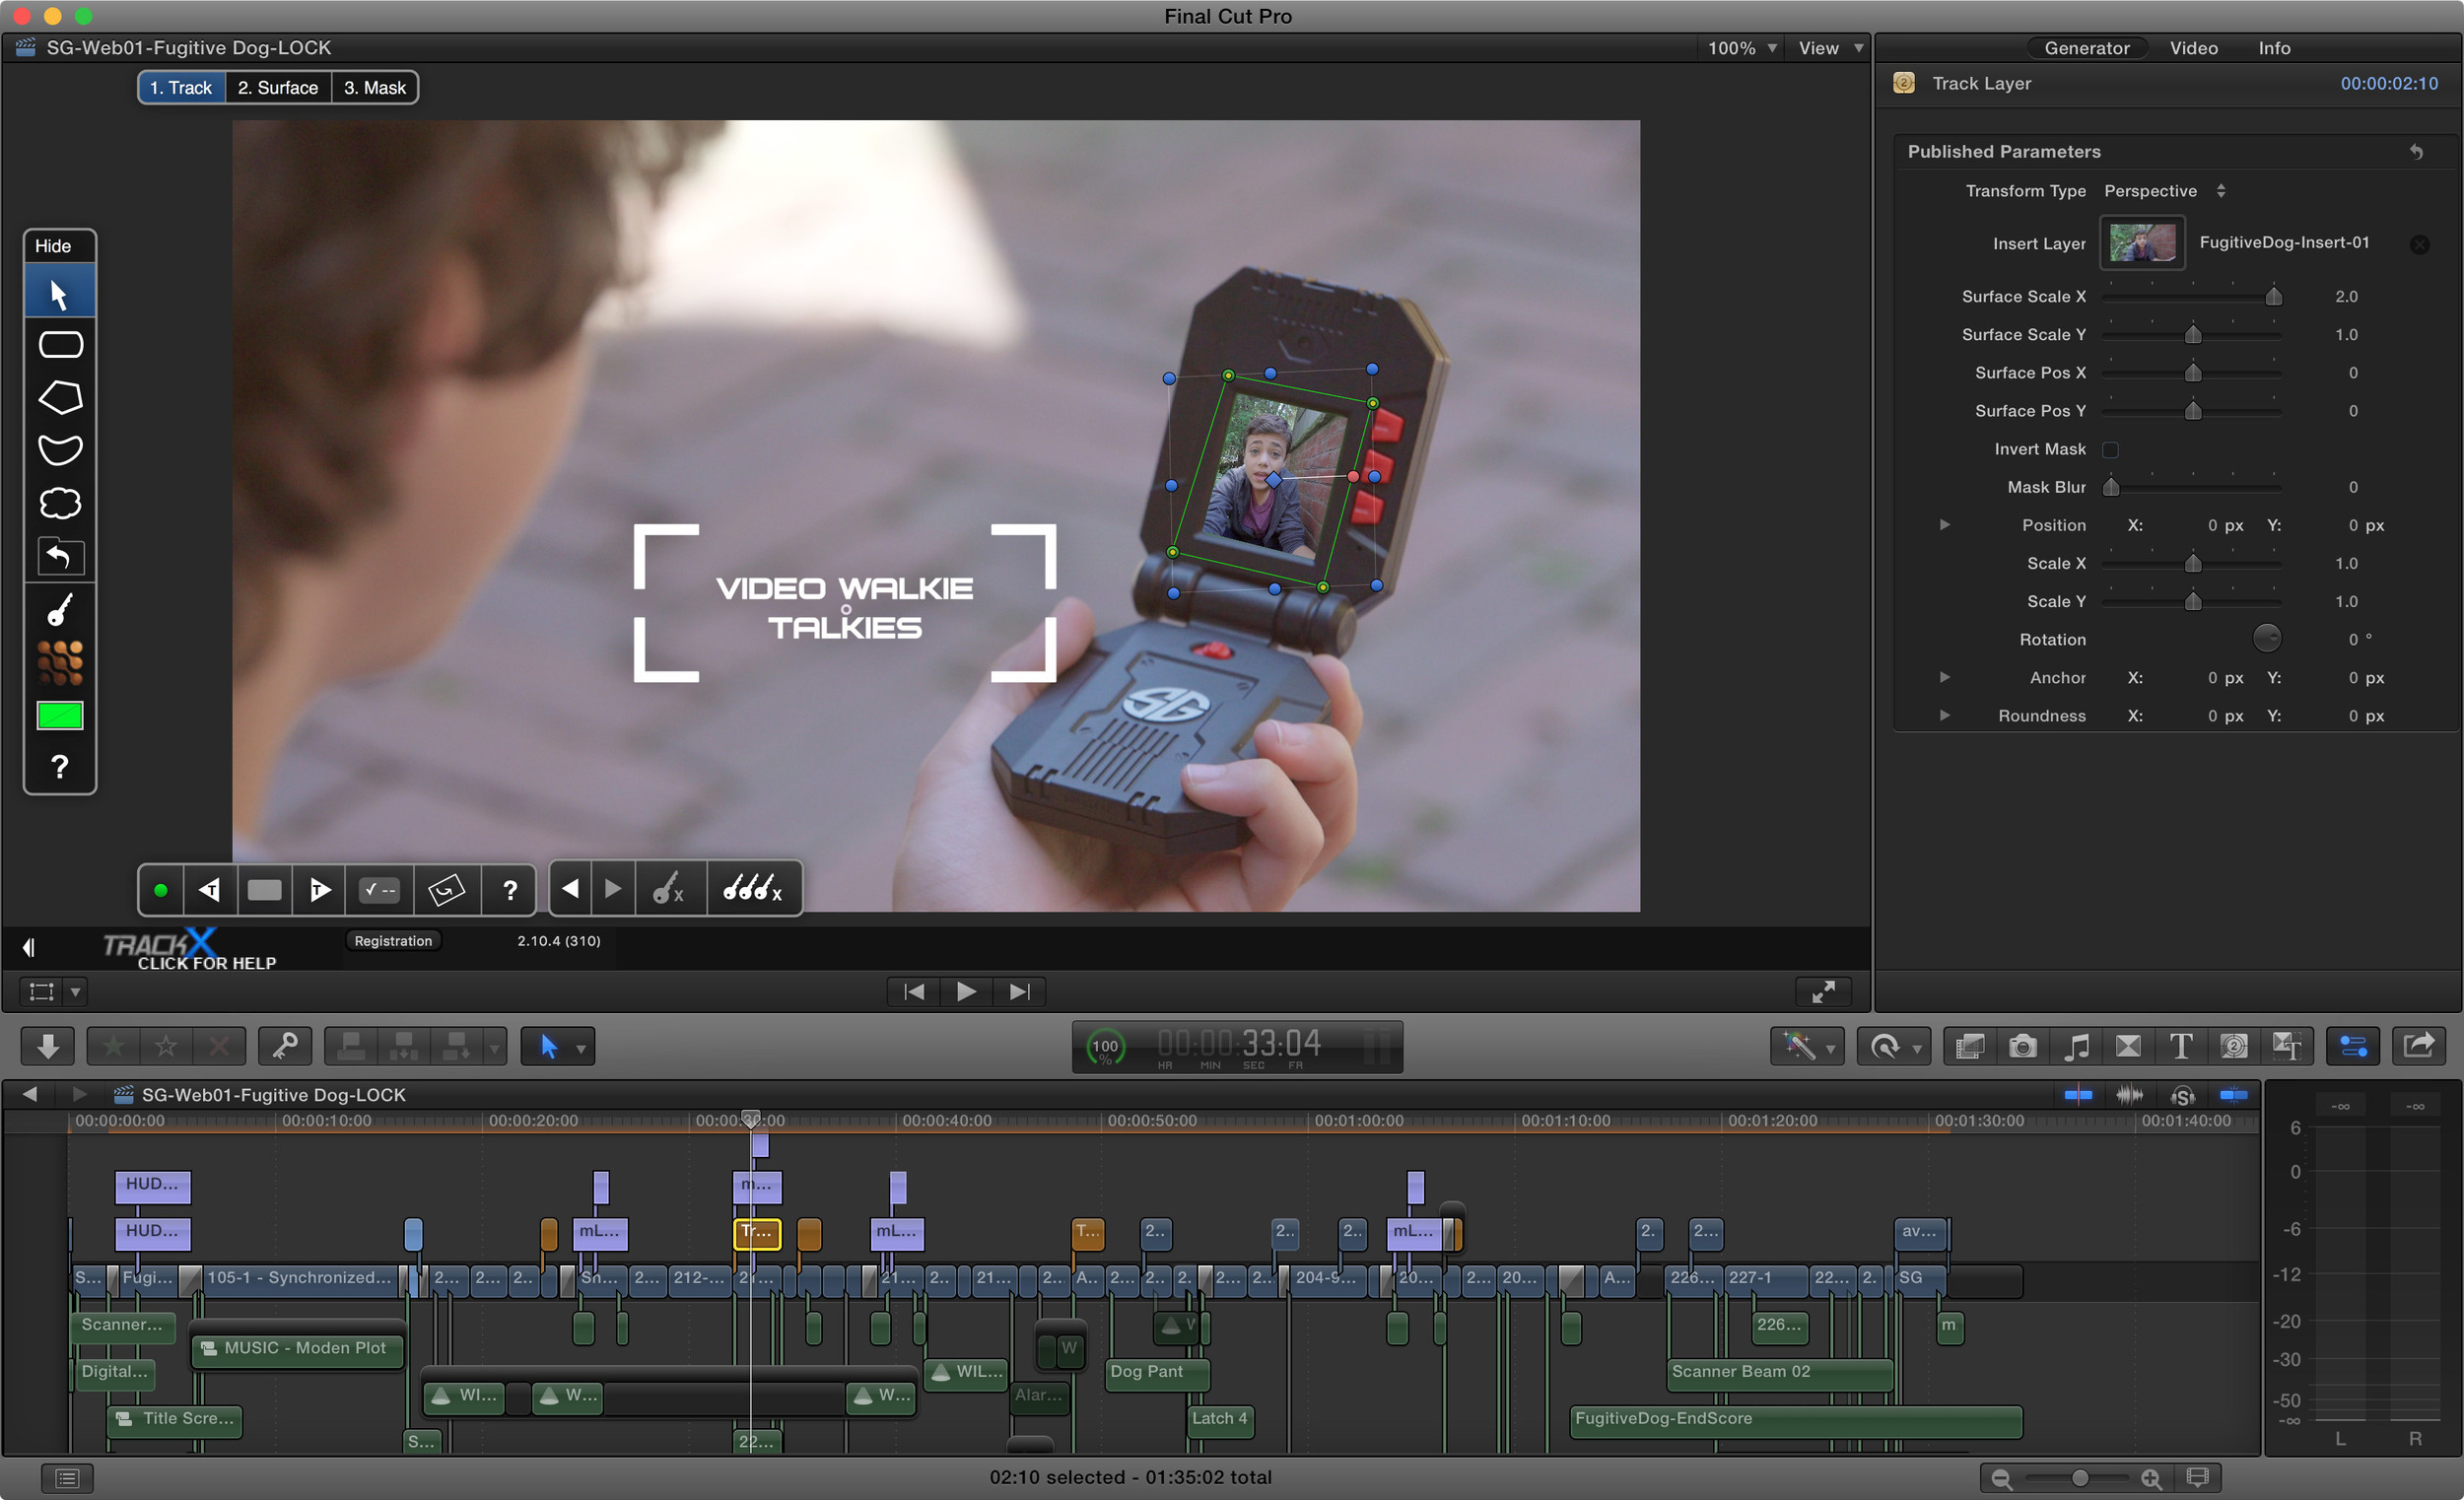 TrackX was invaluable throughout the edit process